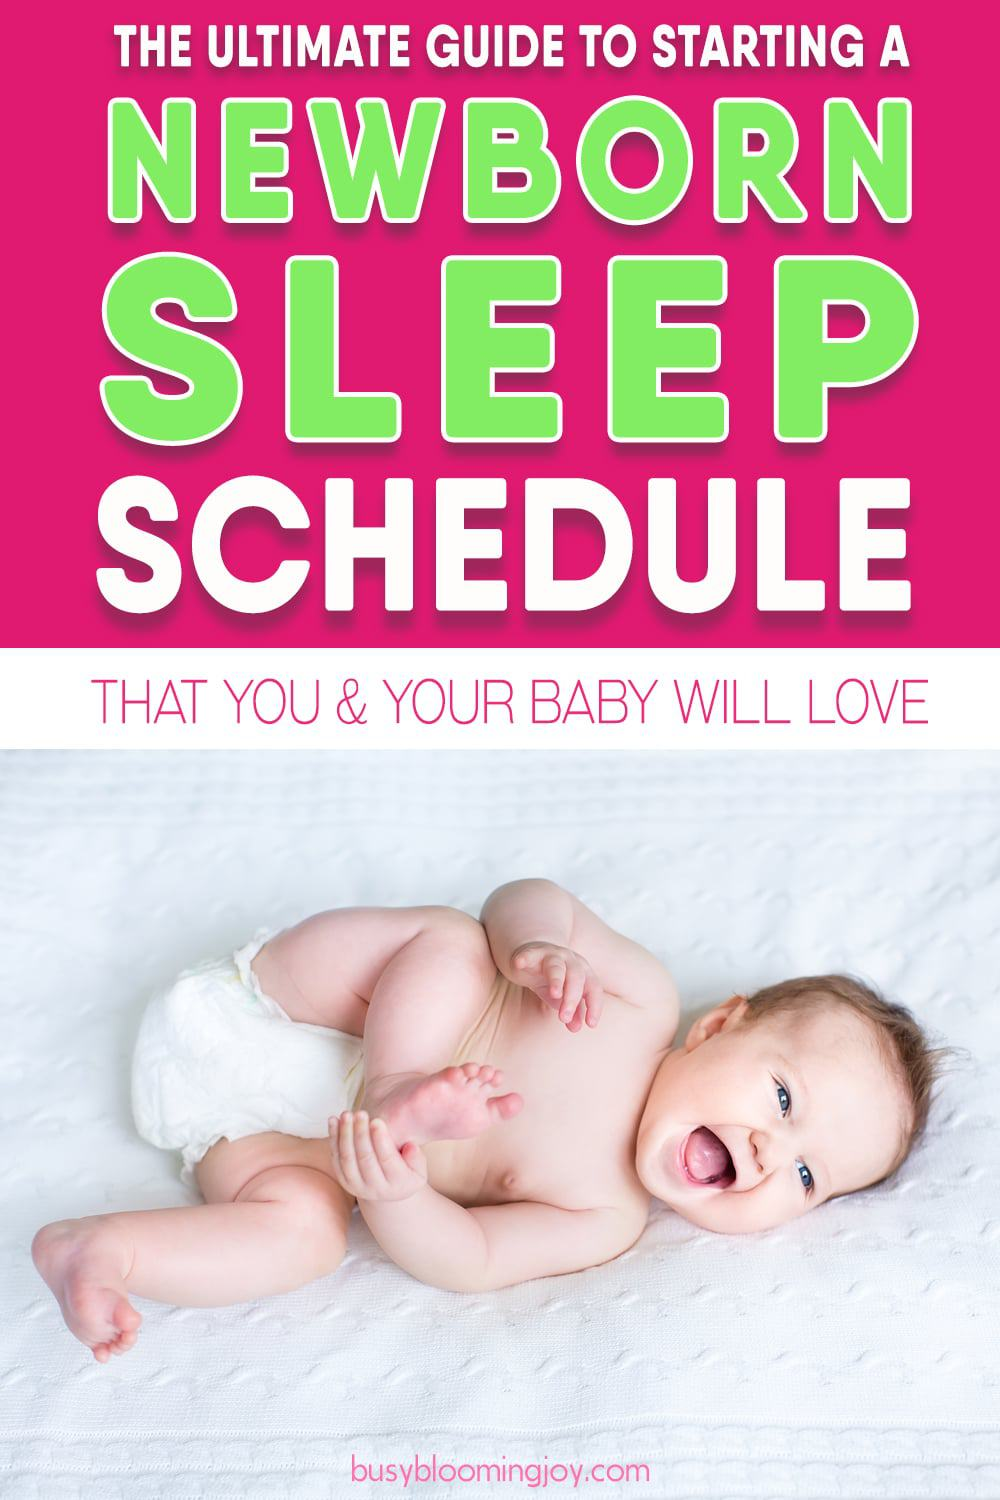 newborn sleep schedule feature image